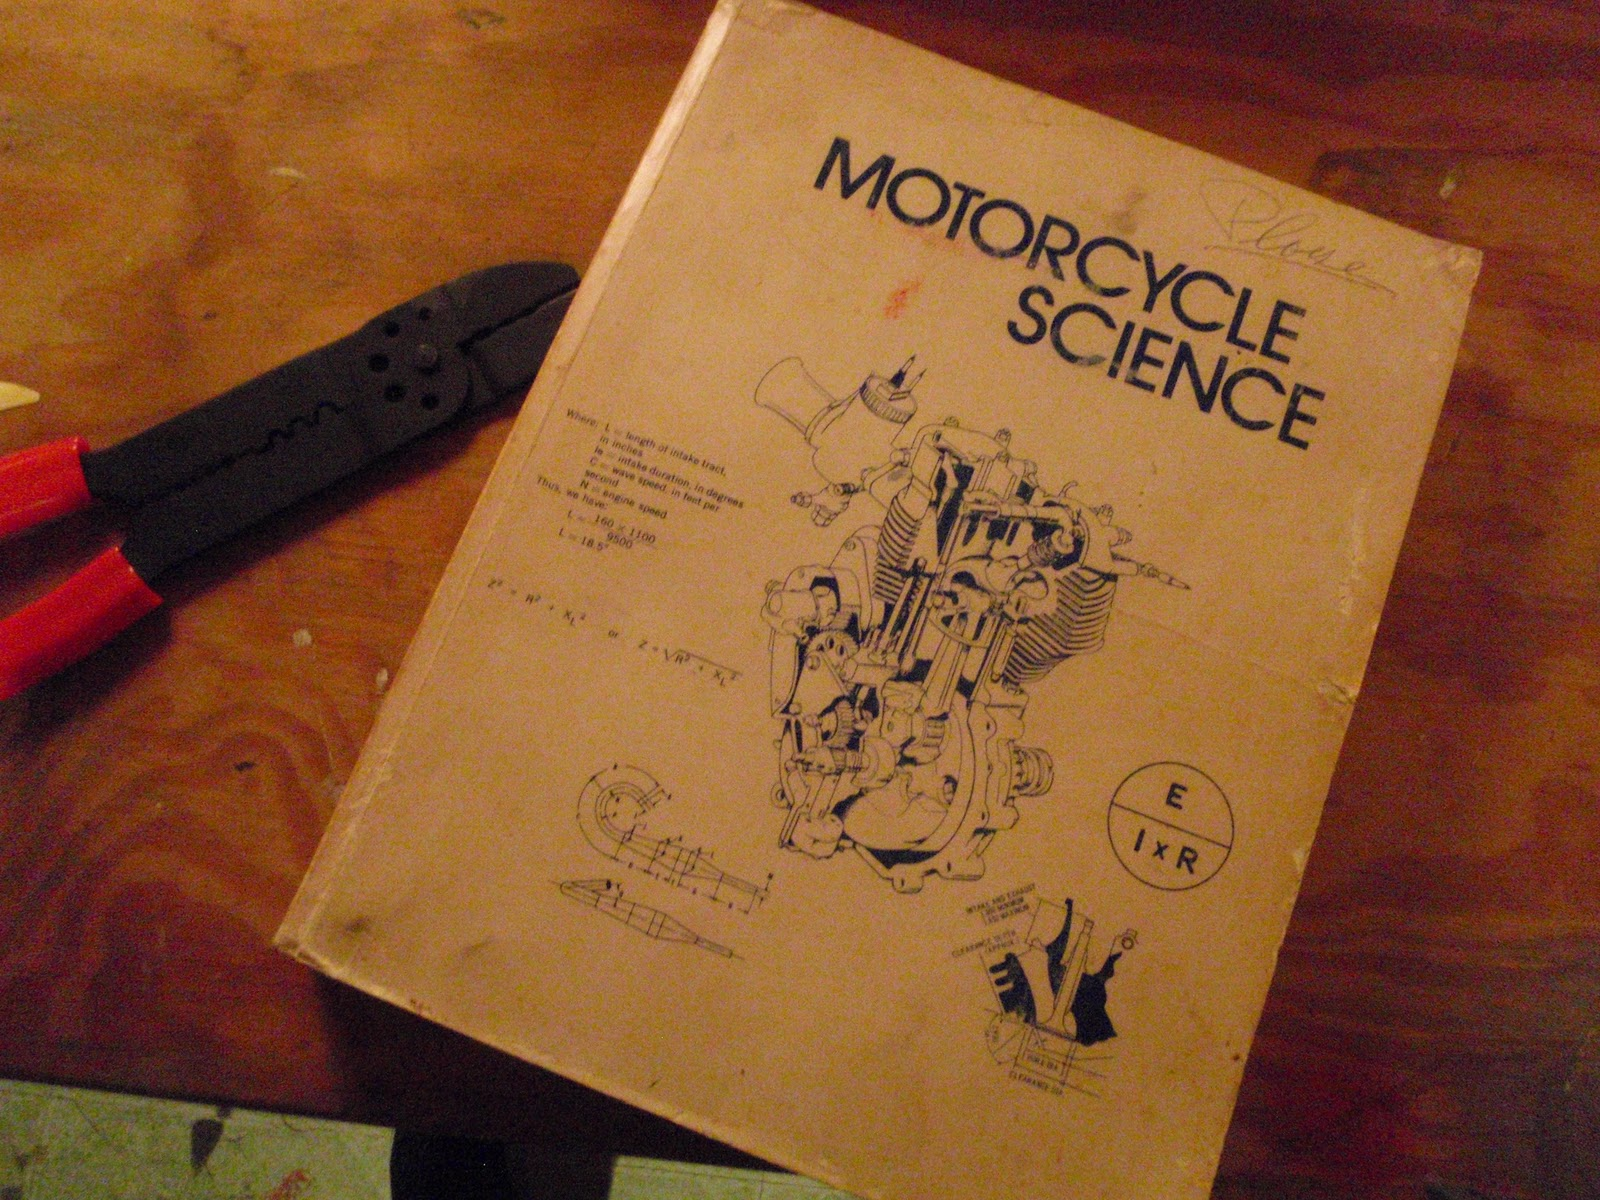 Motorcycle Science